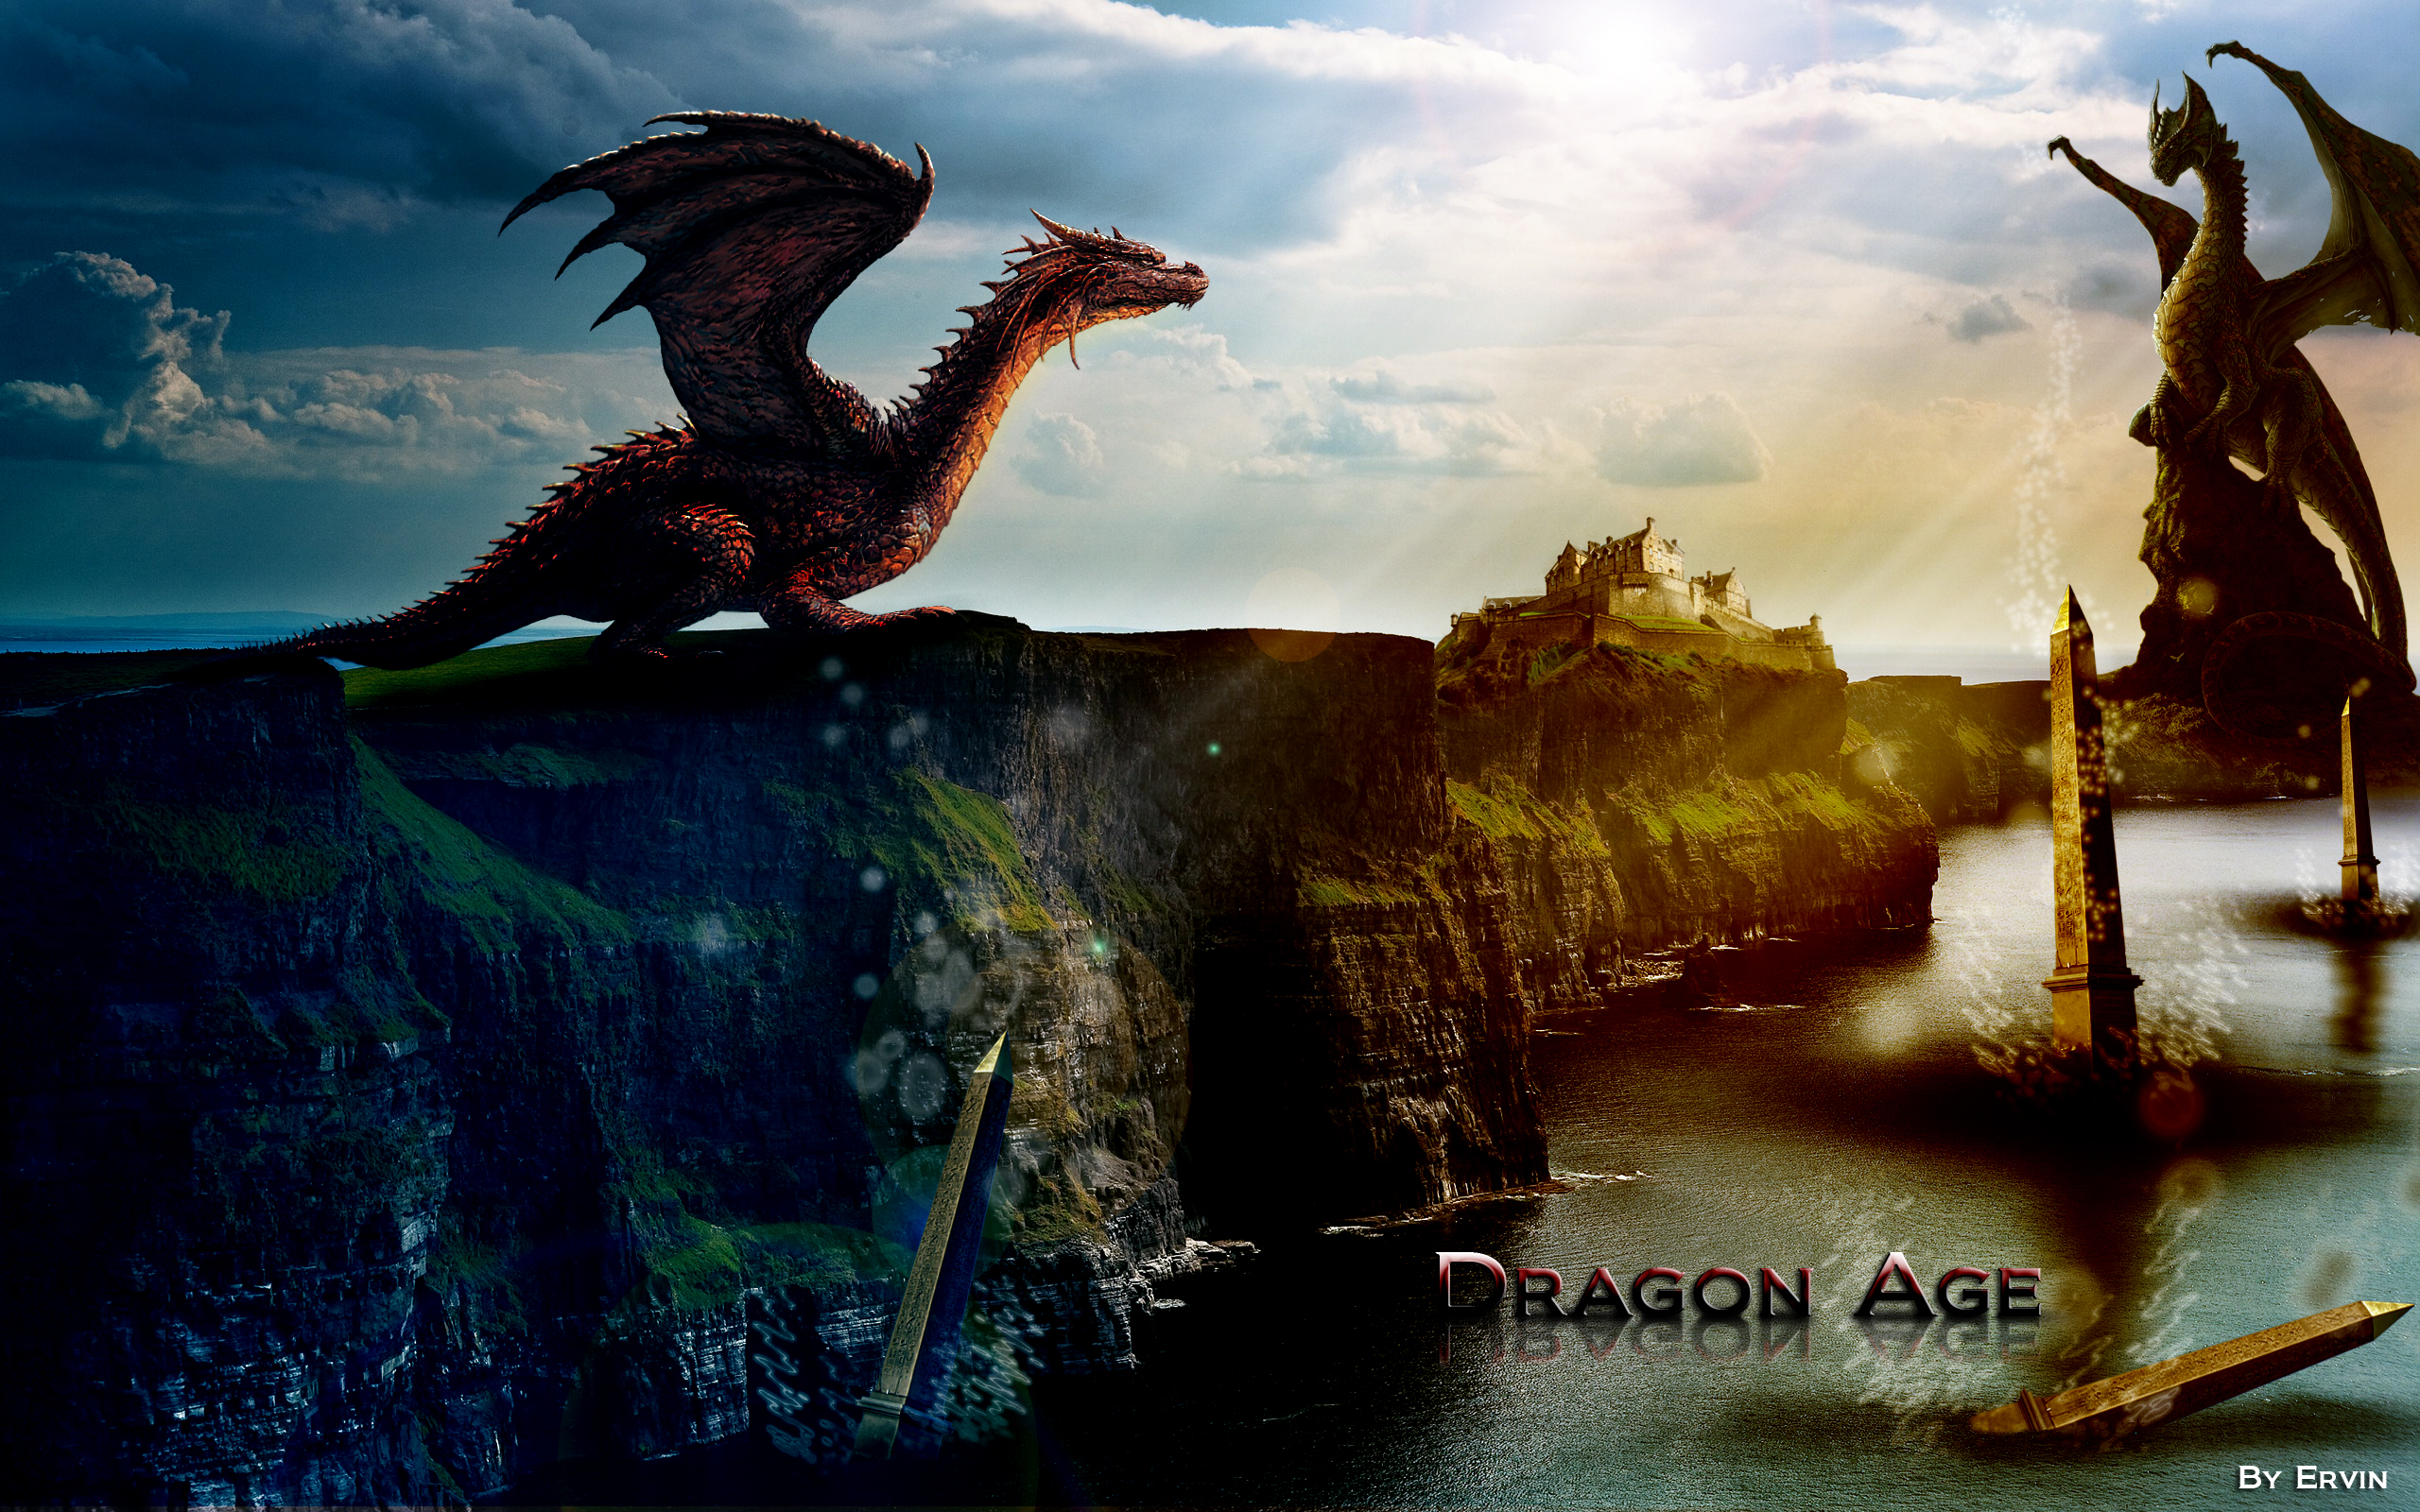 Free Download Dragon Age Hd Wallpapers 2560x1600 For Your